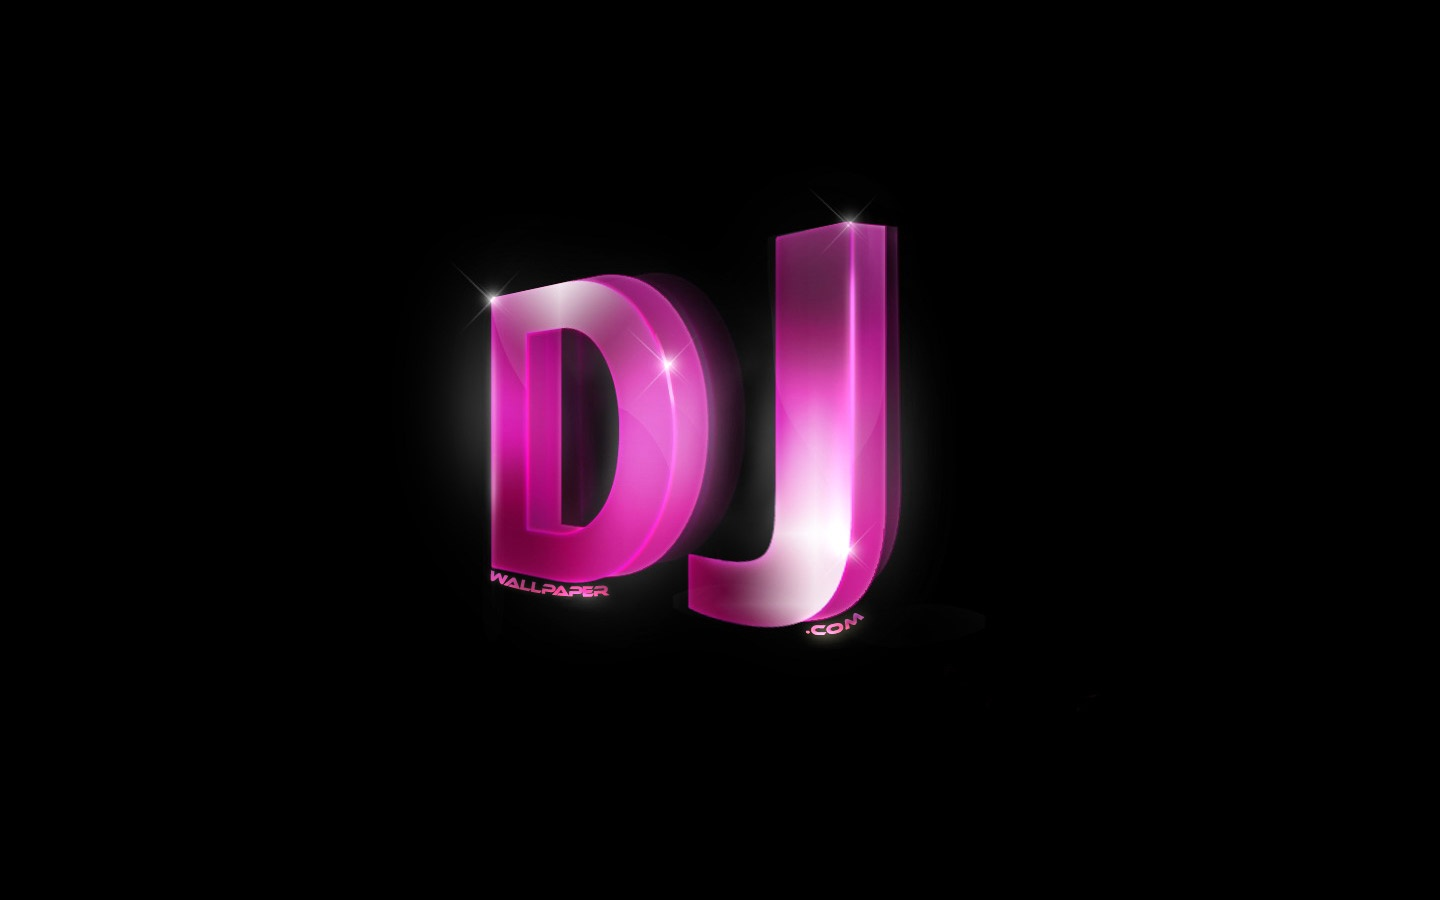 Dj wallpaper new for House music images